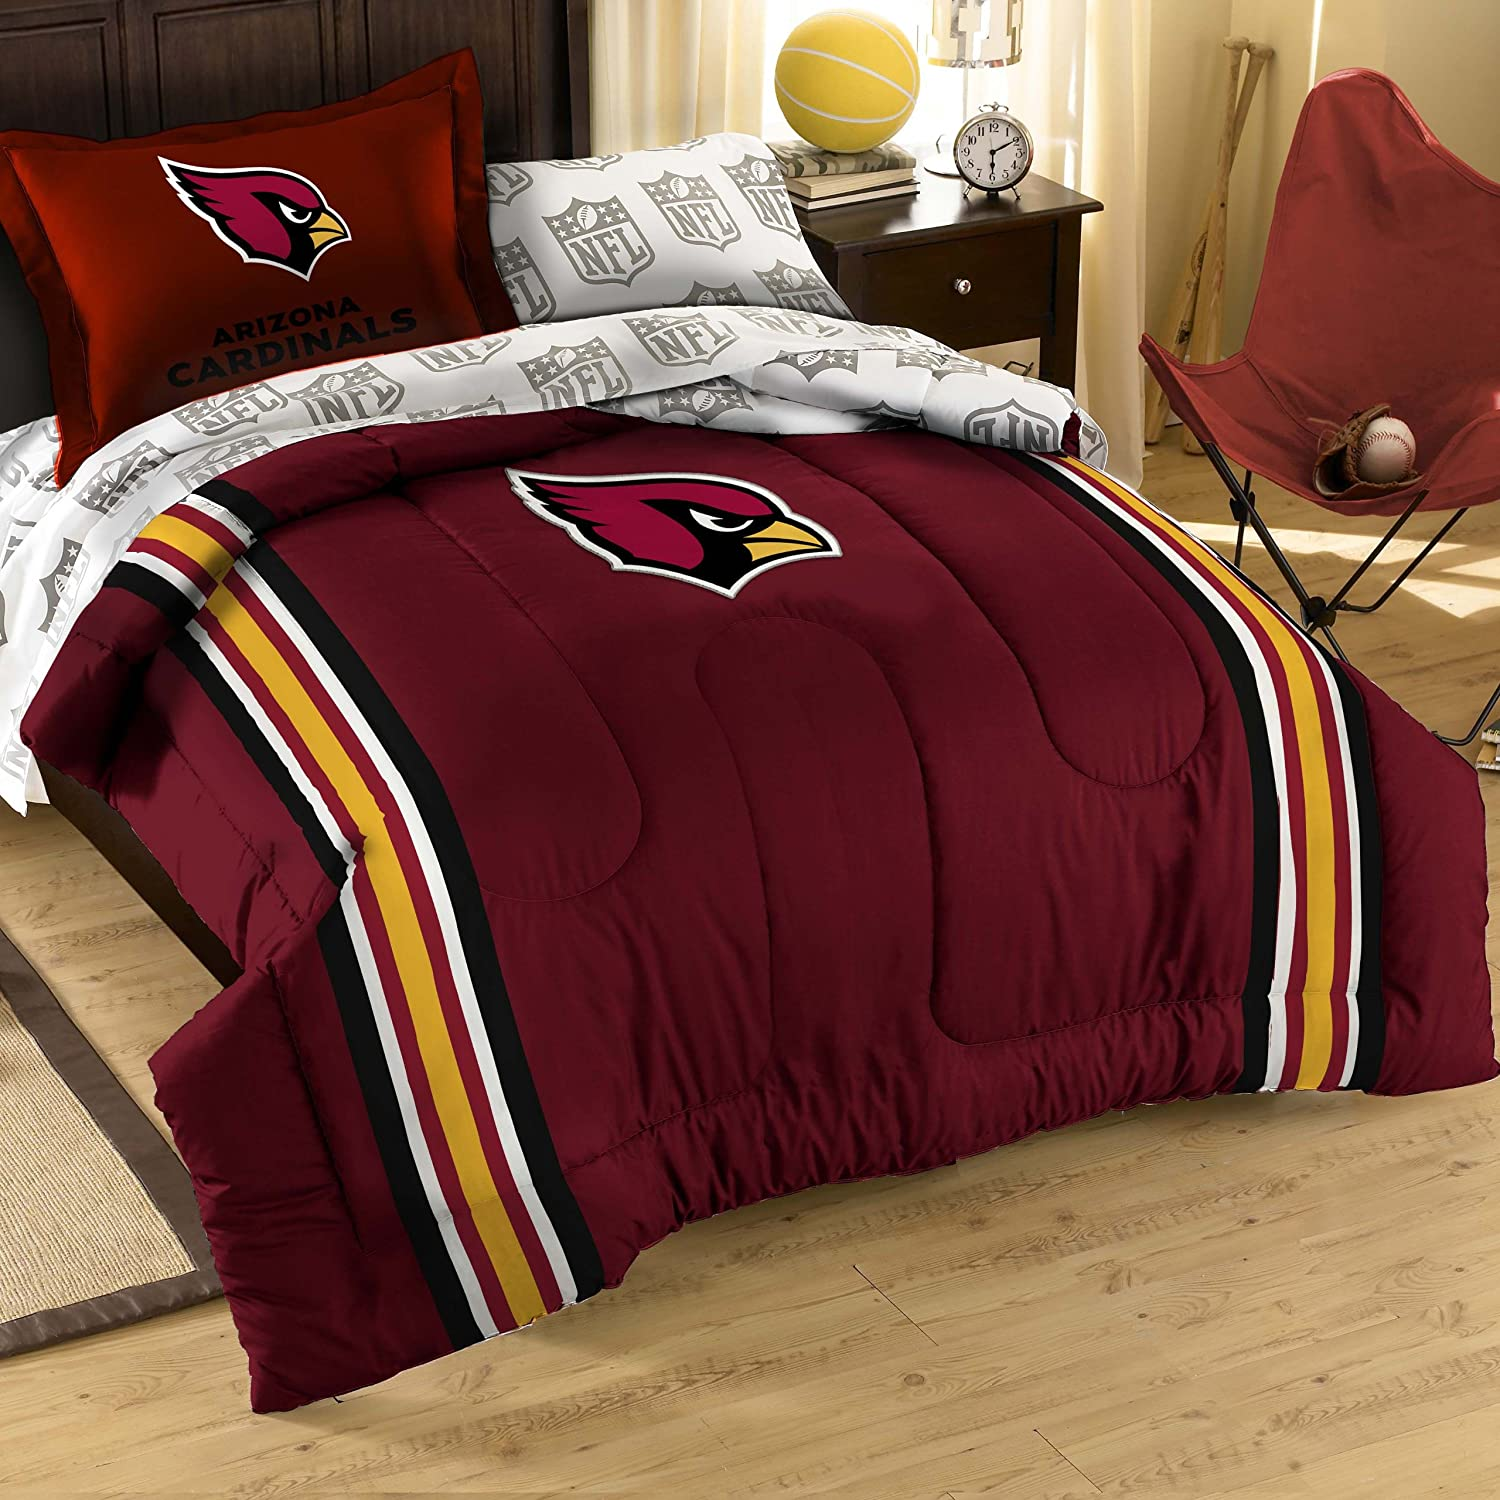 THE NORTHWEST COMPANY Officially Licensed NFL Arizona Cardinals Twin Bedding Set, Multi Color